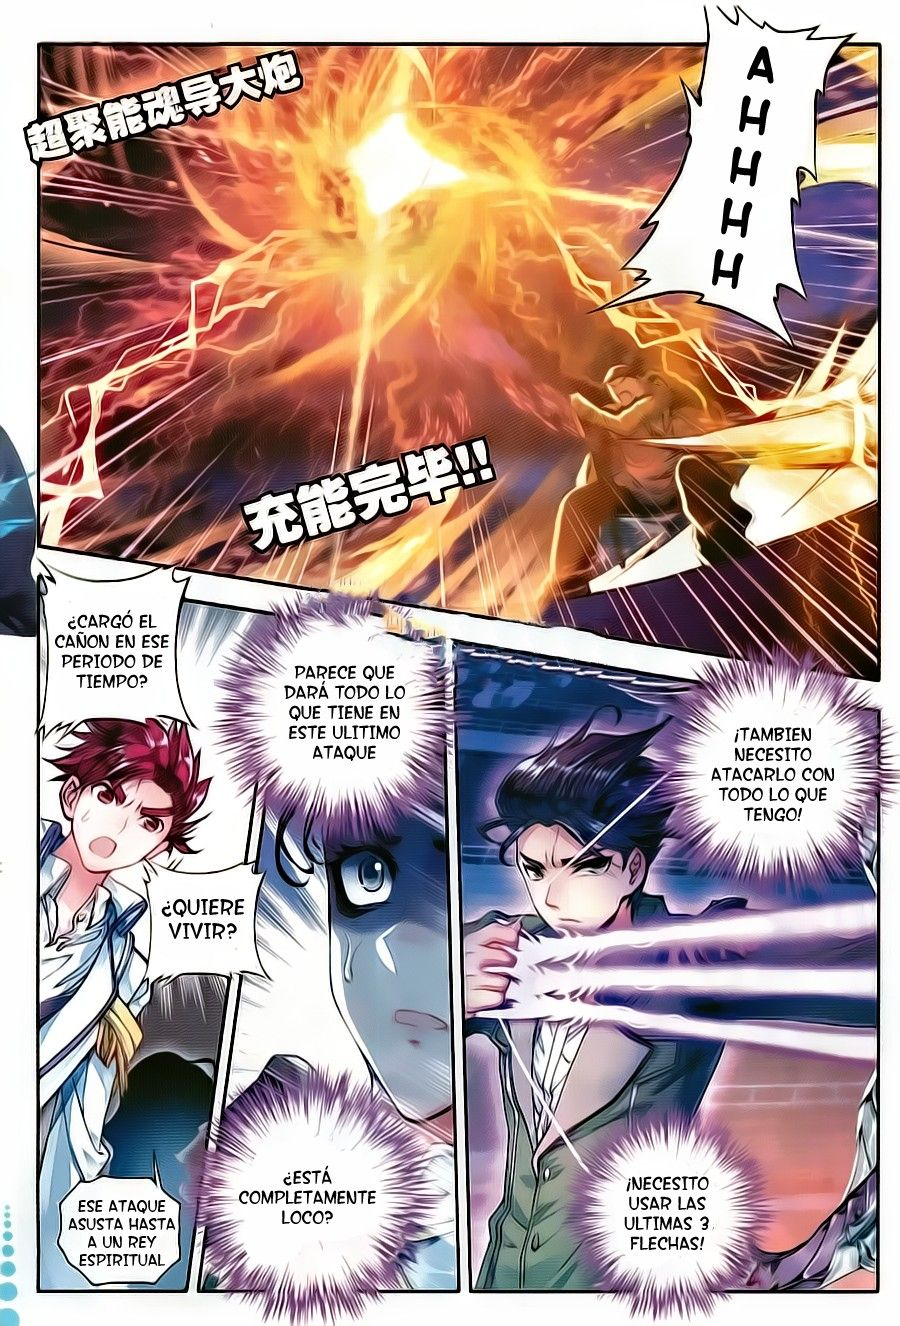 http://c5.ninemanga.com/es_manga/33/16417/463653/952af98aa6133e599c897b3532684e5a.jpg Page 6